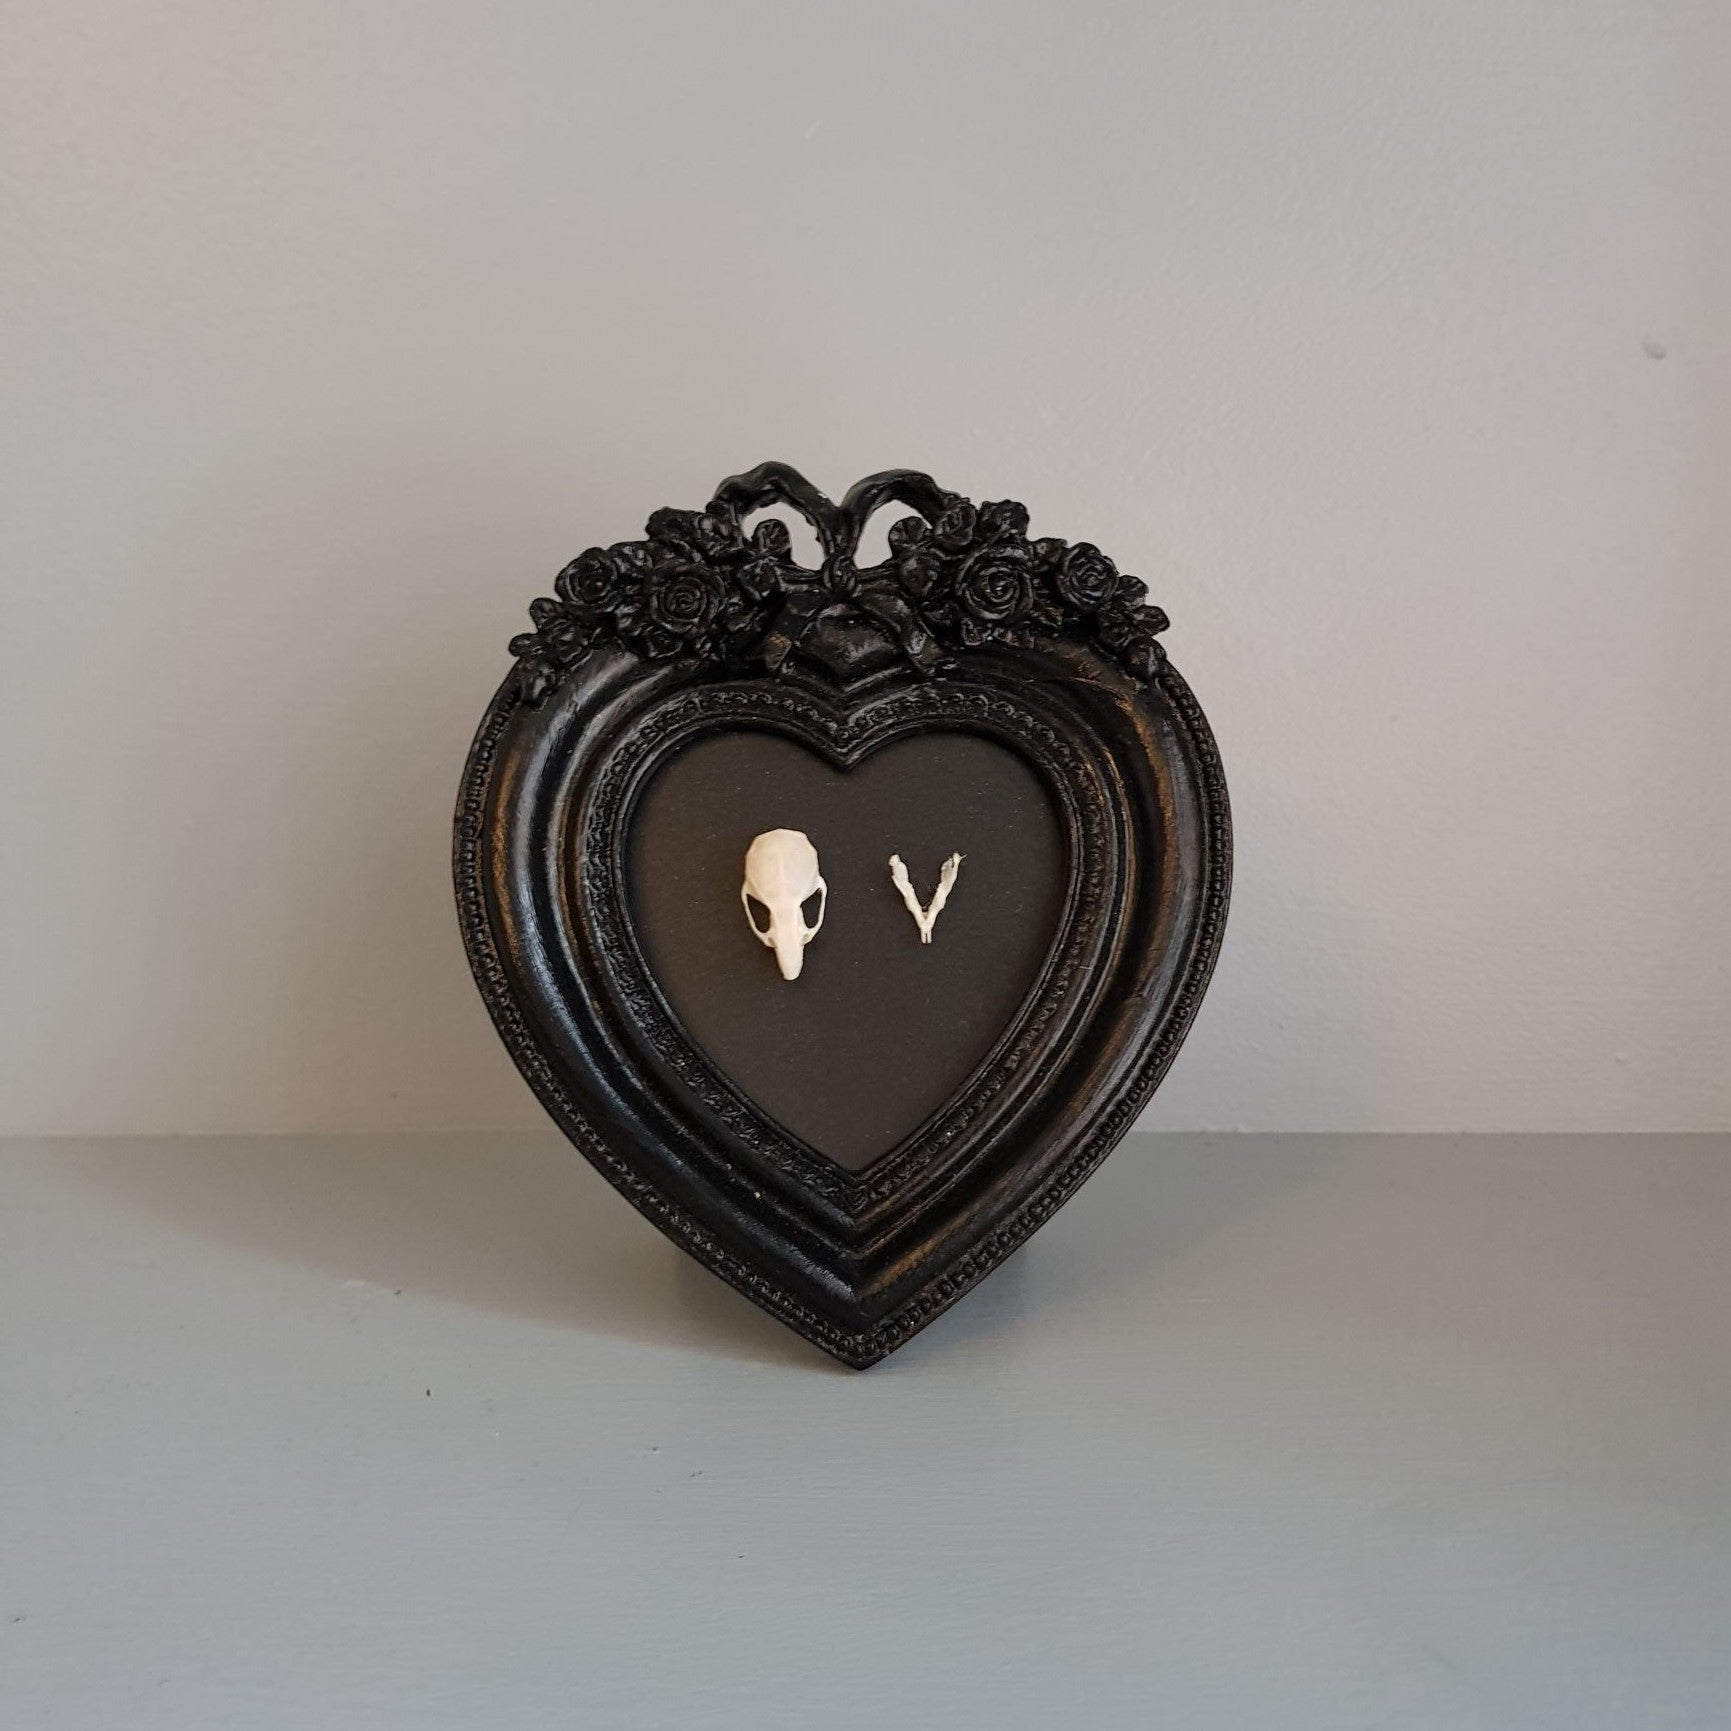 gemmas-curiosity-shop - Mouse skull frame - Gemma's Curiosity Shop - Oddity